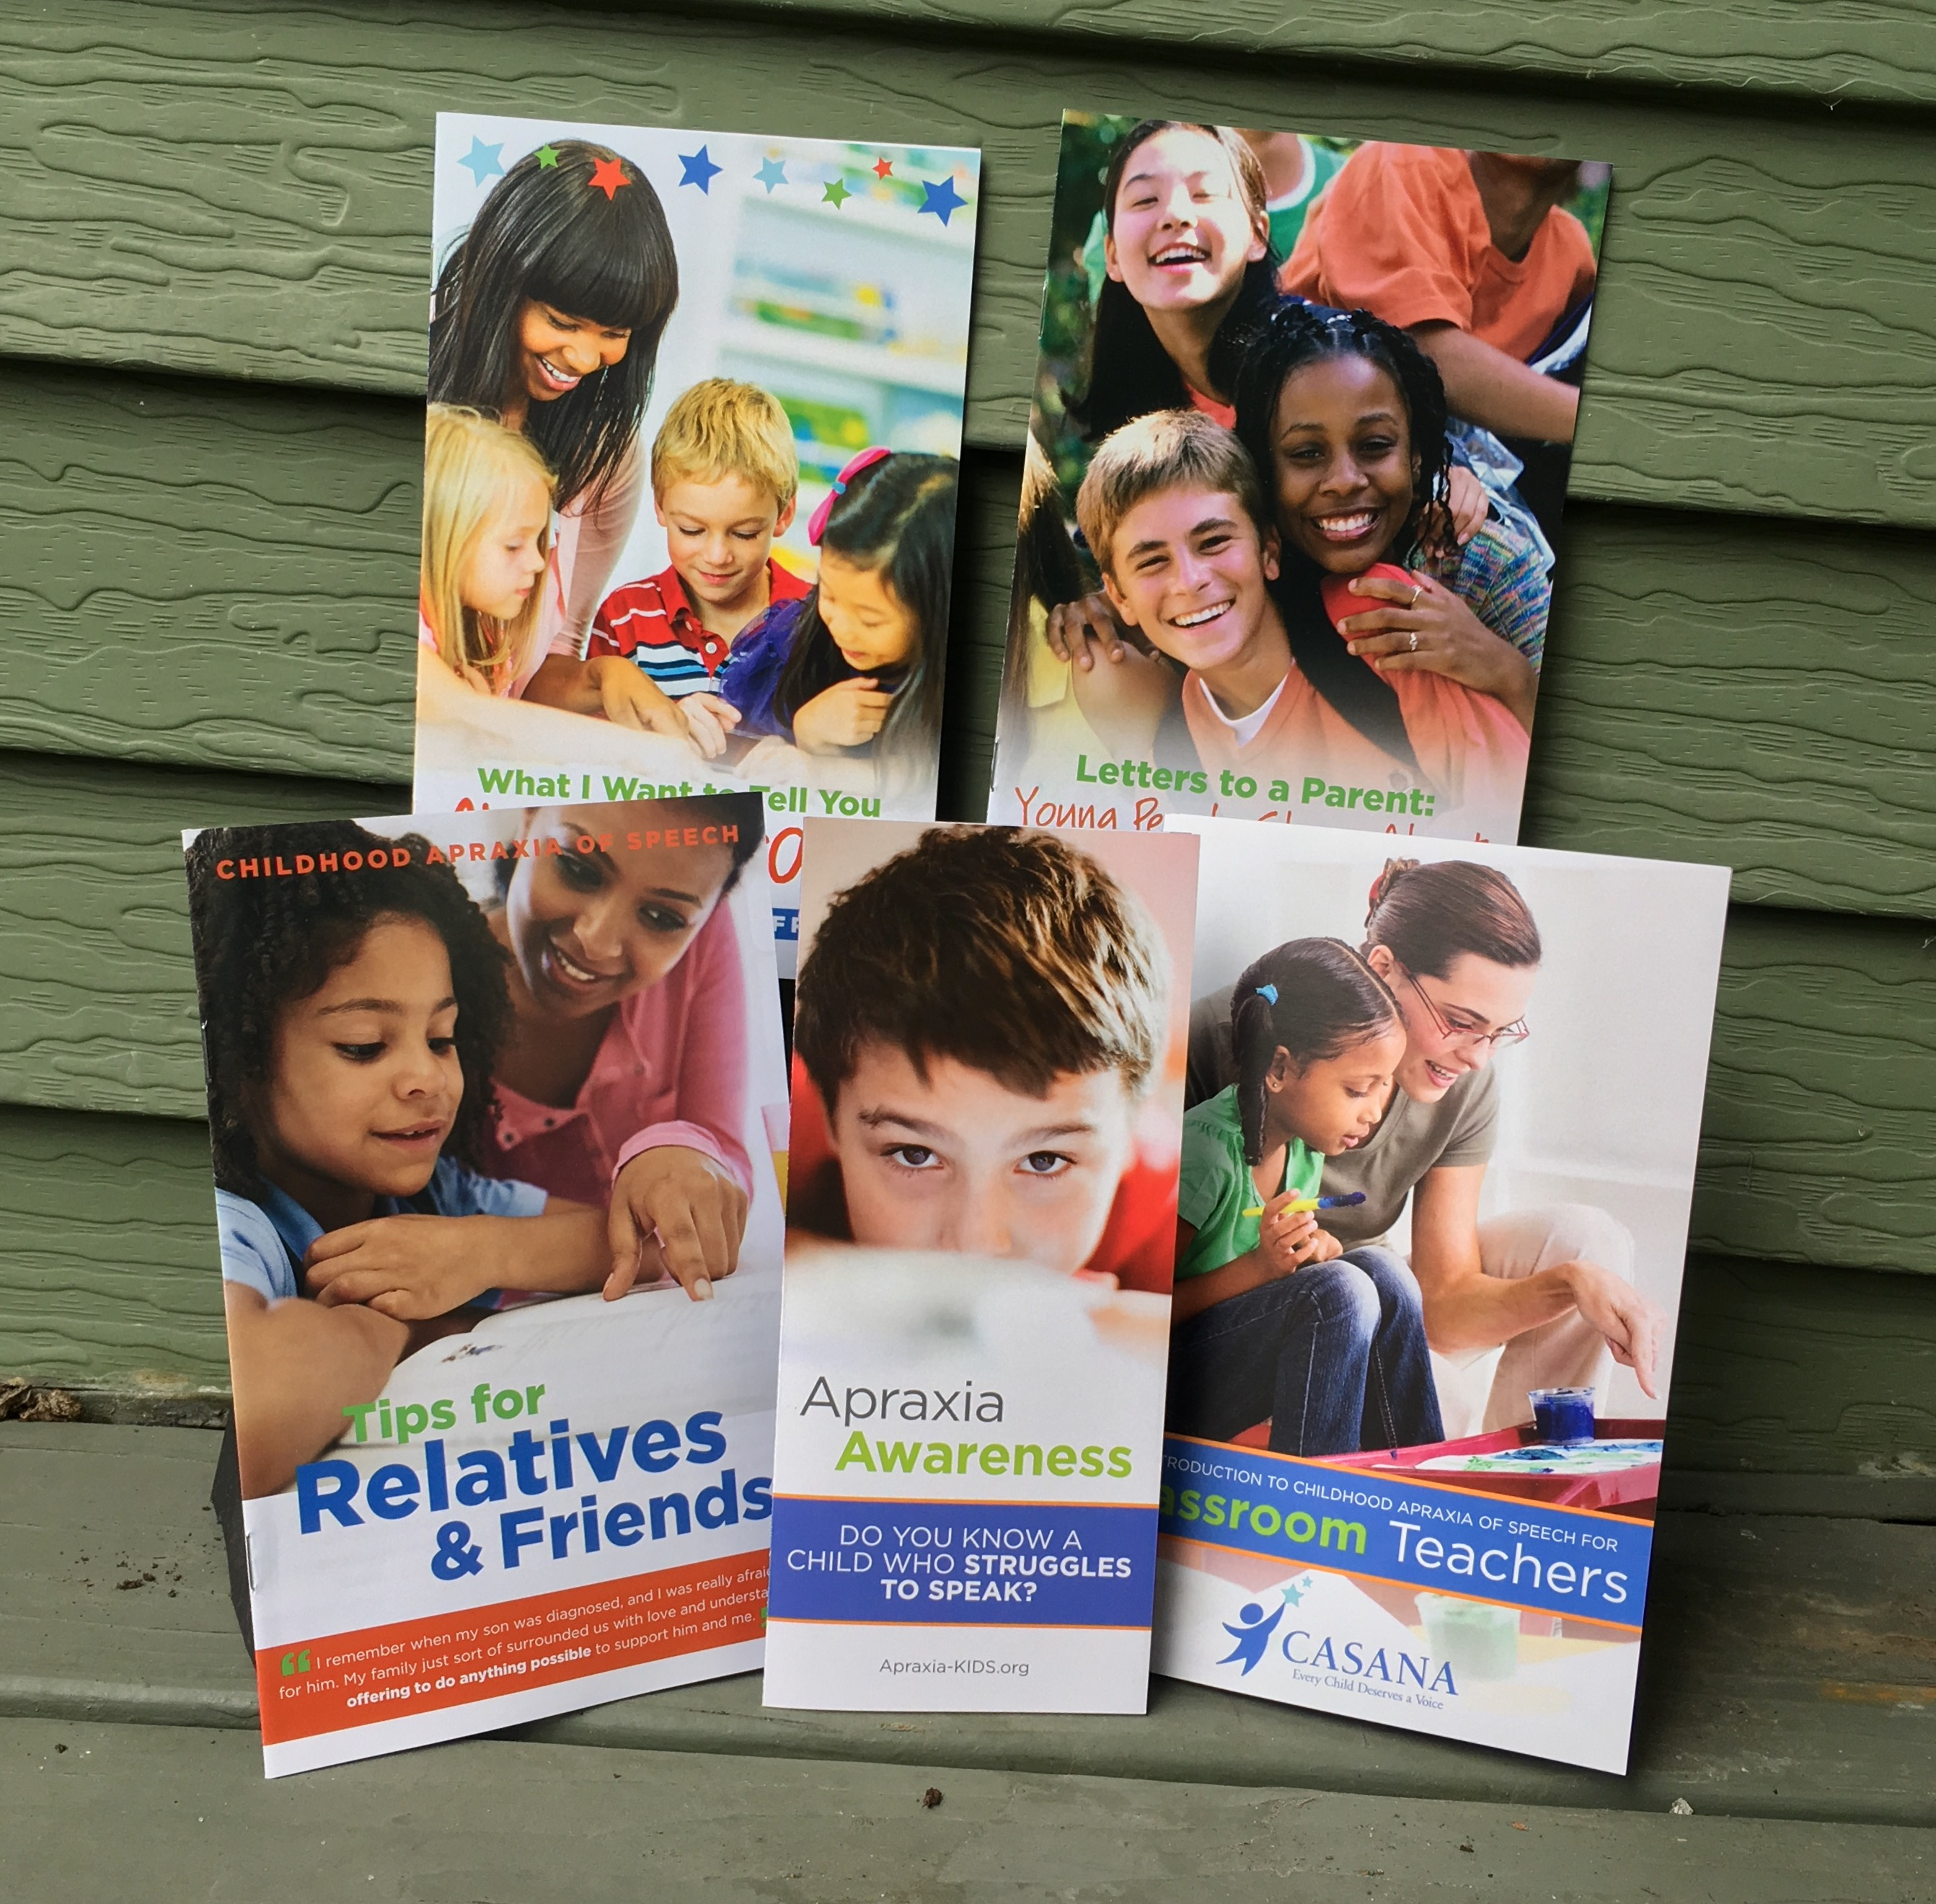 2017 Apraxia Awareness Day Materials